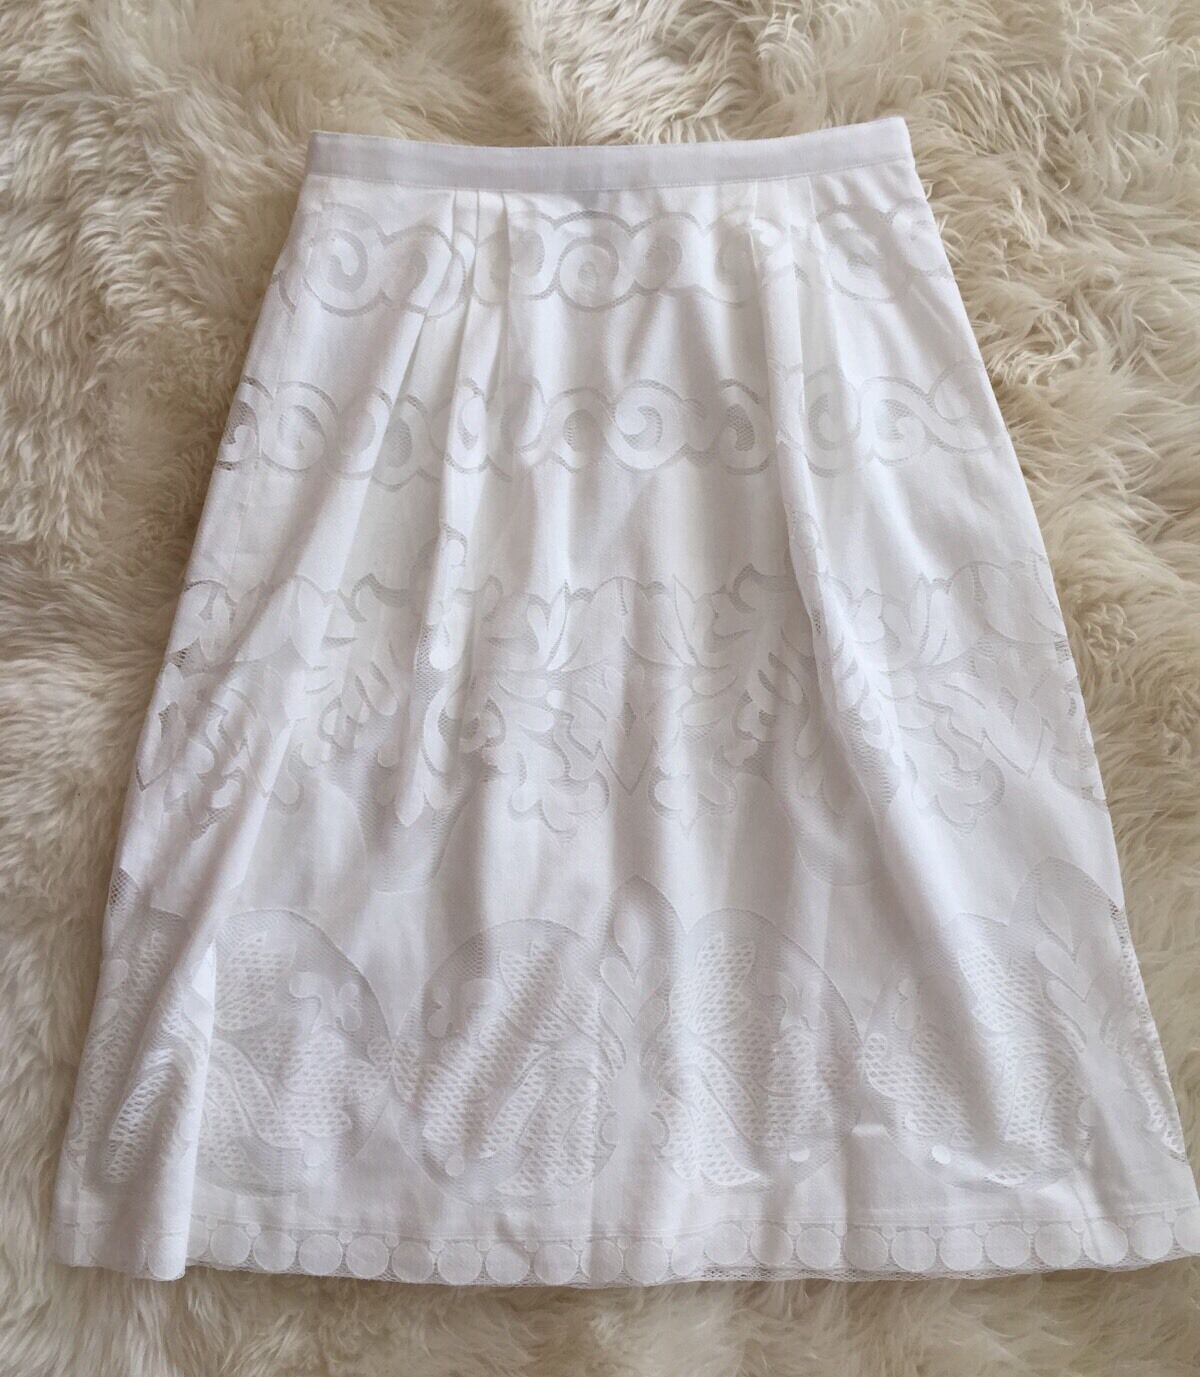 J CREW Midi Skirt in Ornate Lace Size 8 White  e9057  NEW